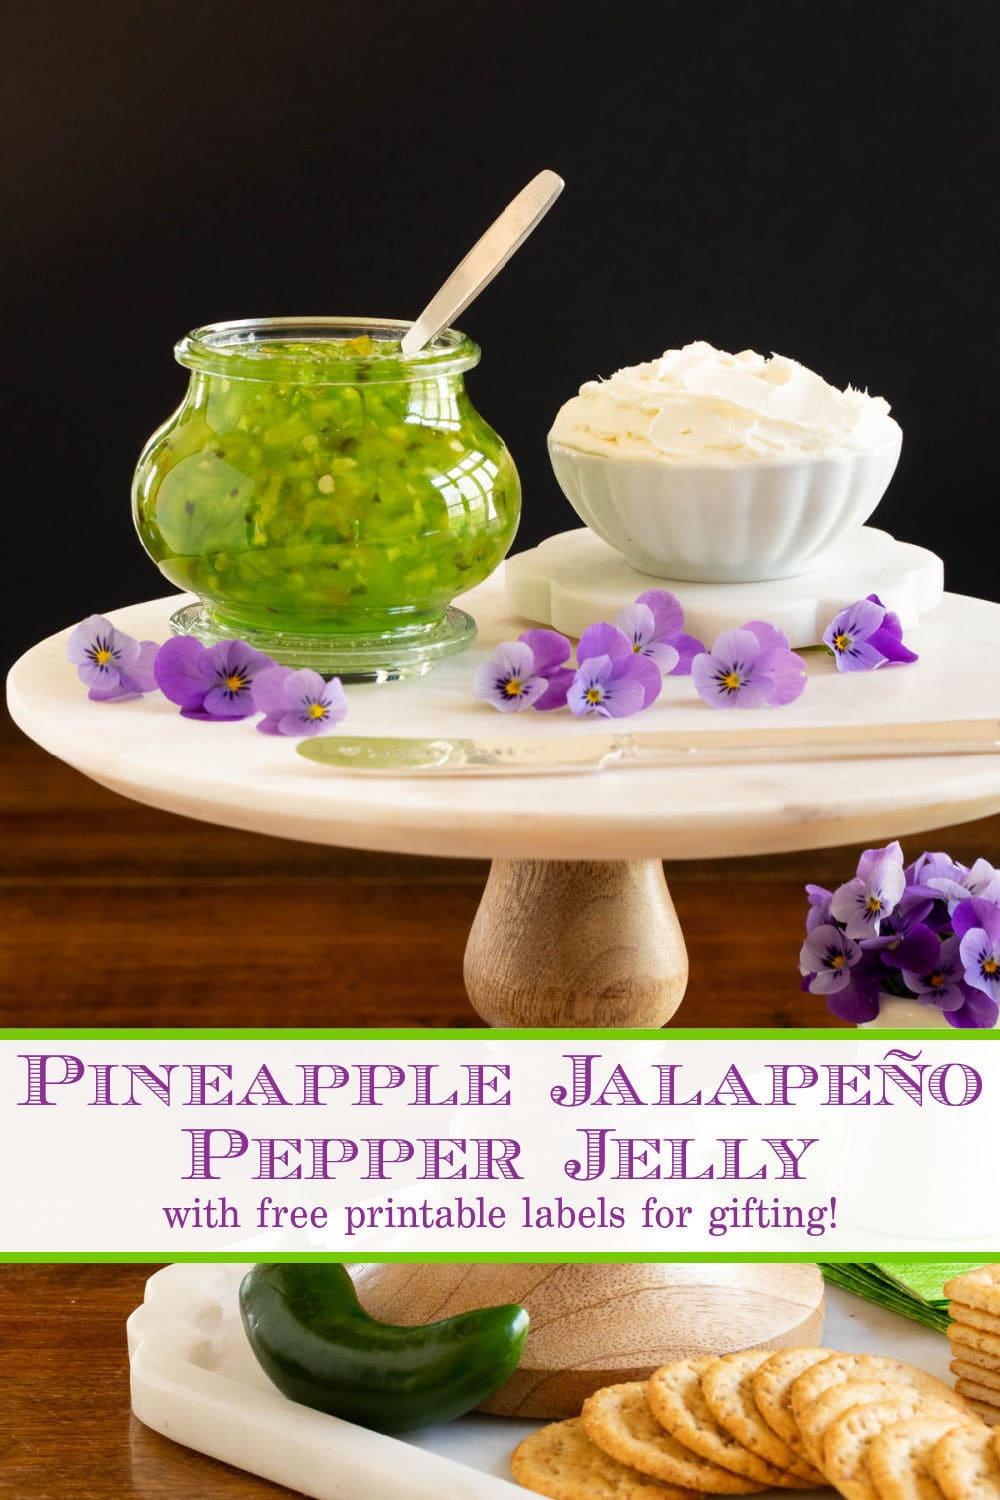 Pineapple Jalapeño Pepper Jelly (no canning skills needed!)